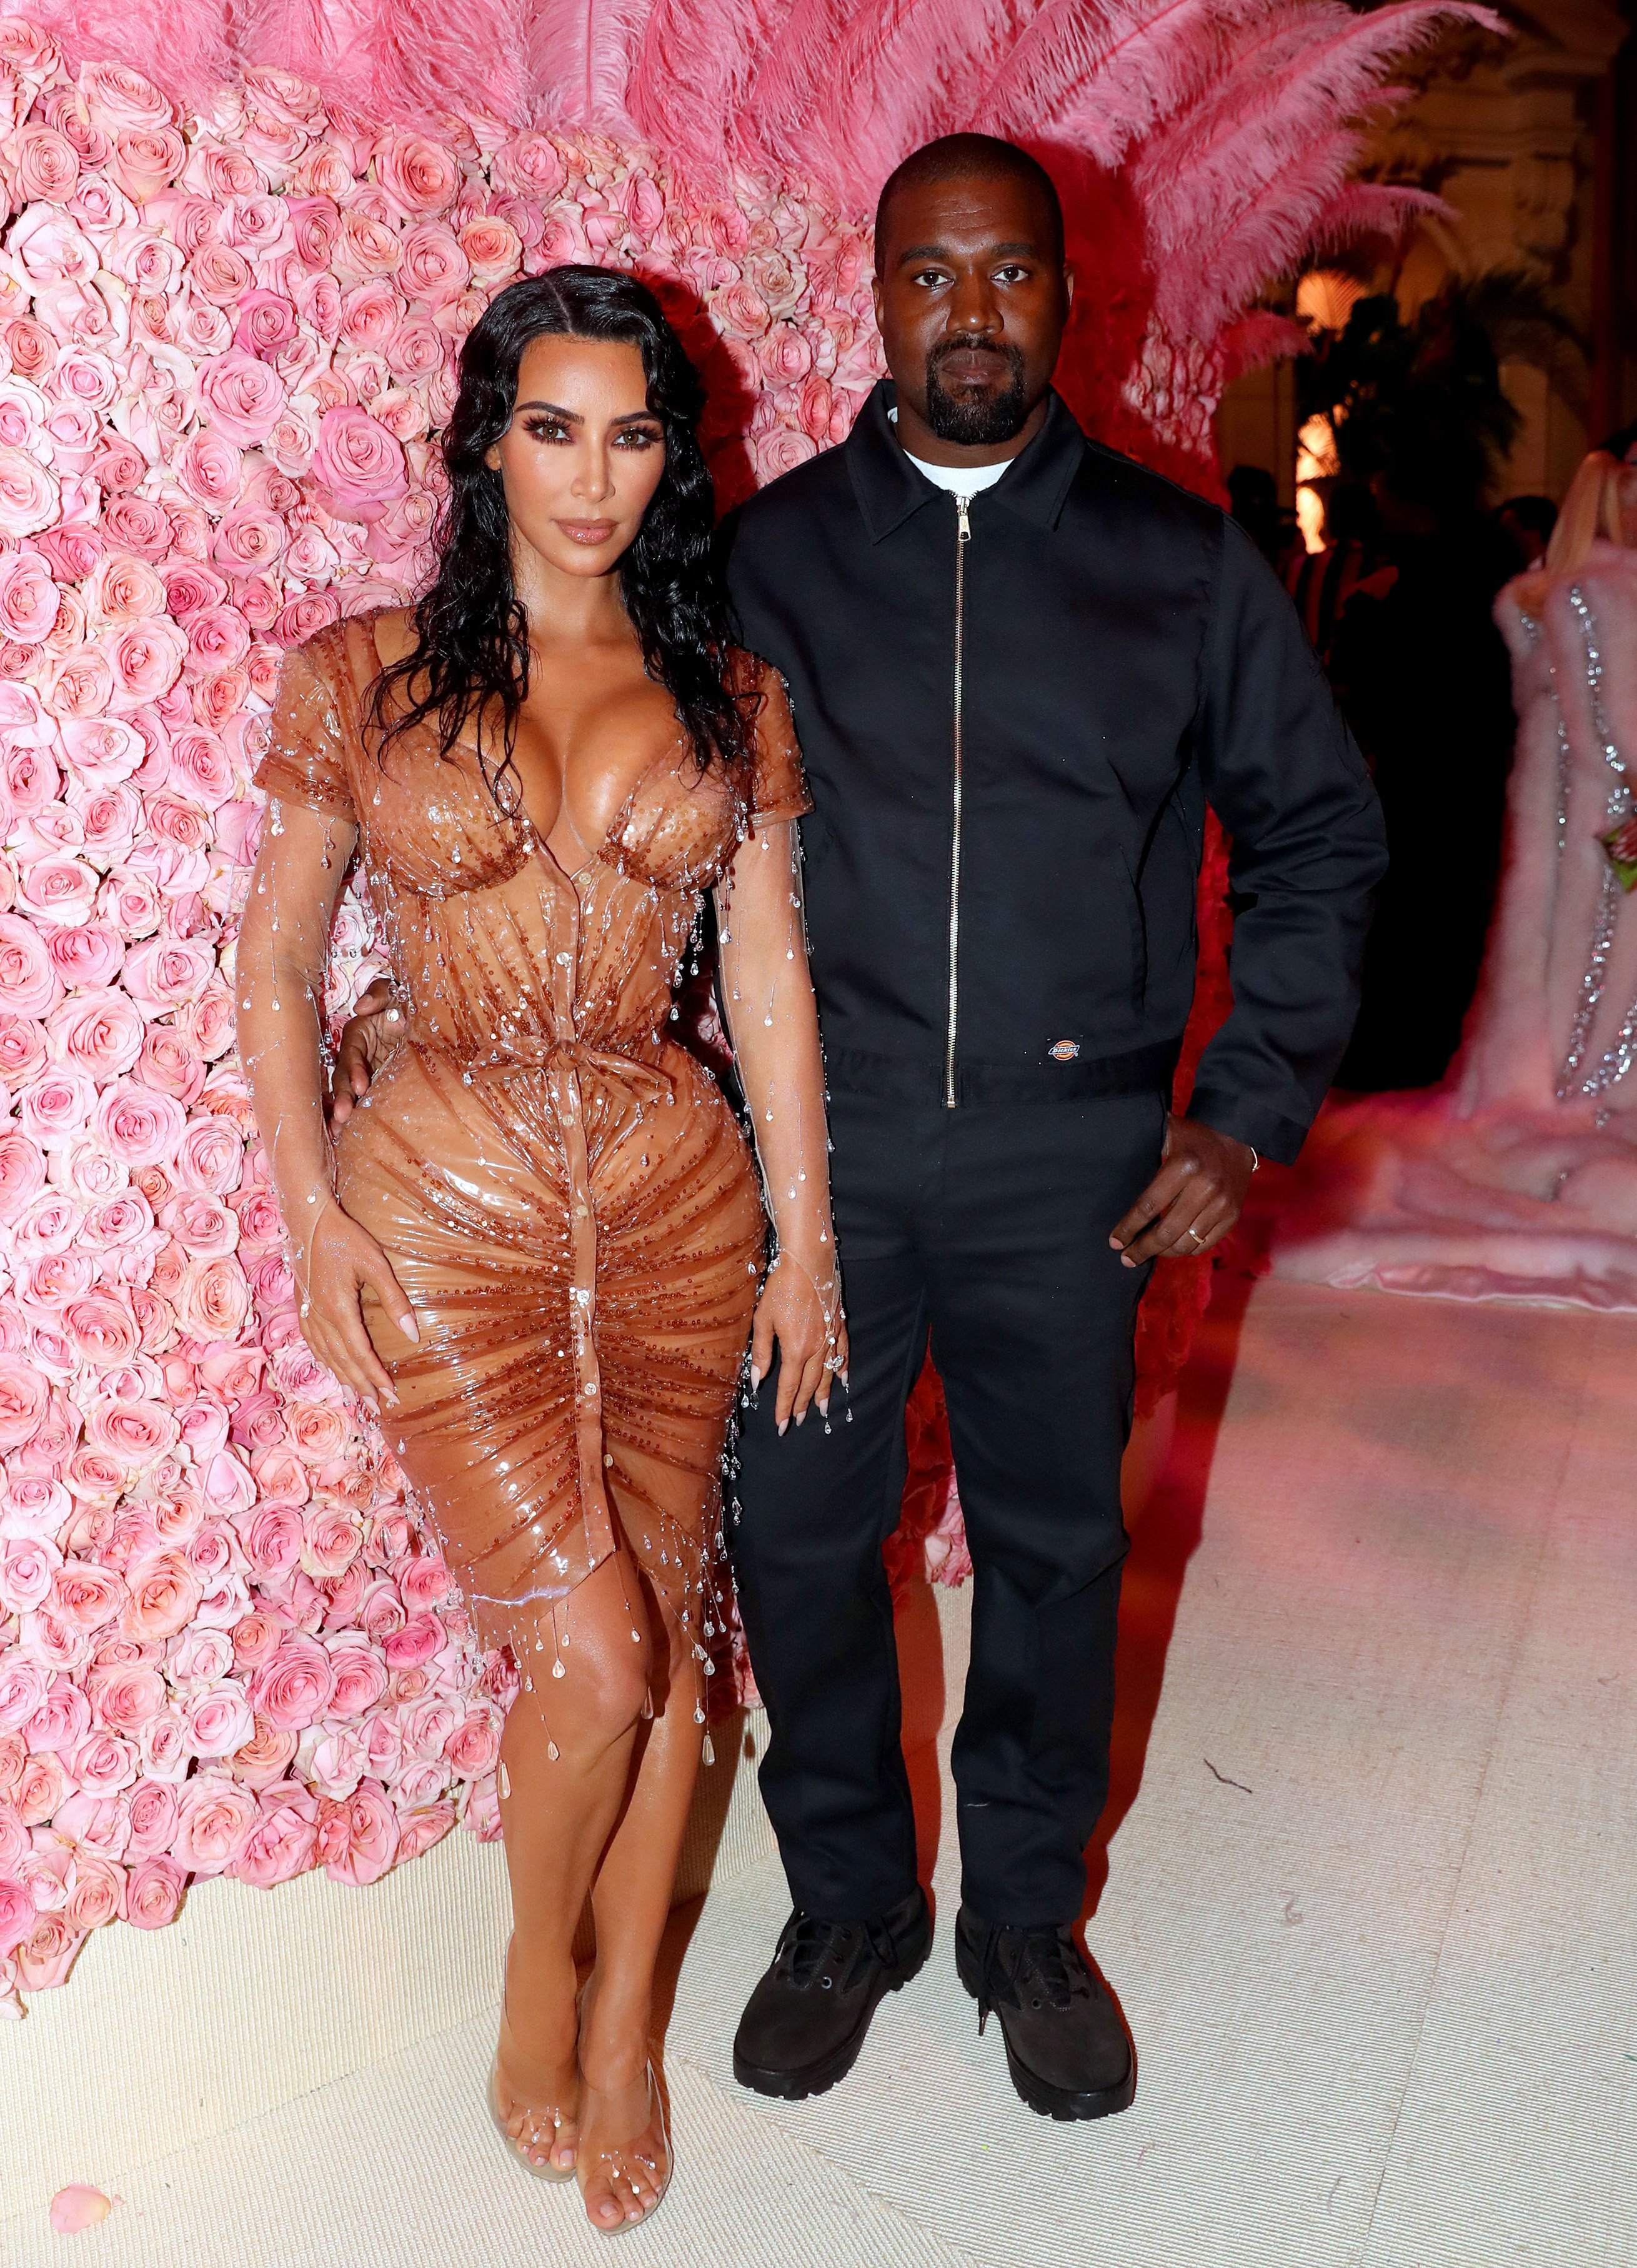 Kim Kardashian and Kanye West at the 2019 Met Gala | Photo: Getty Images